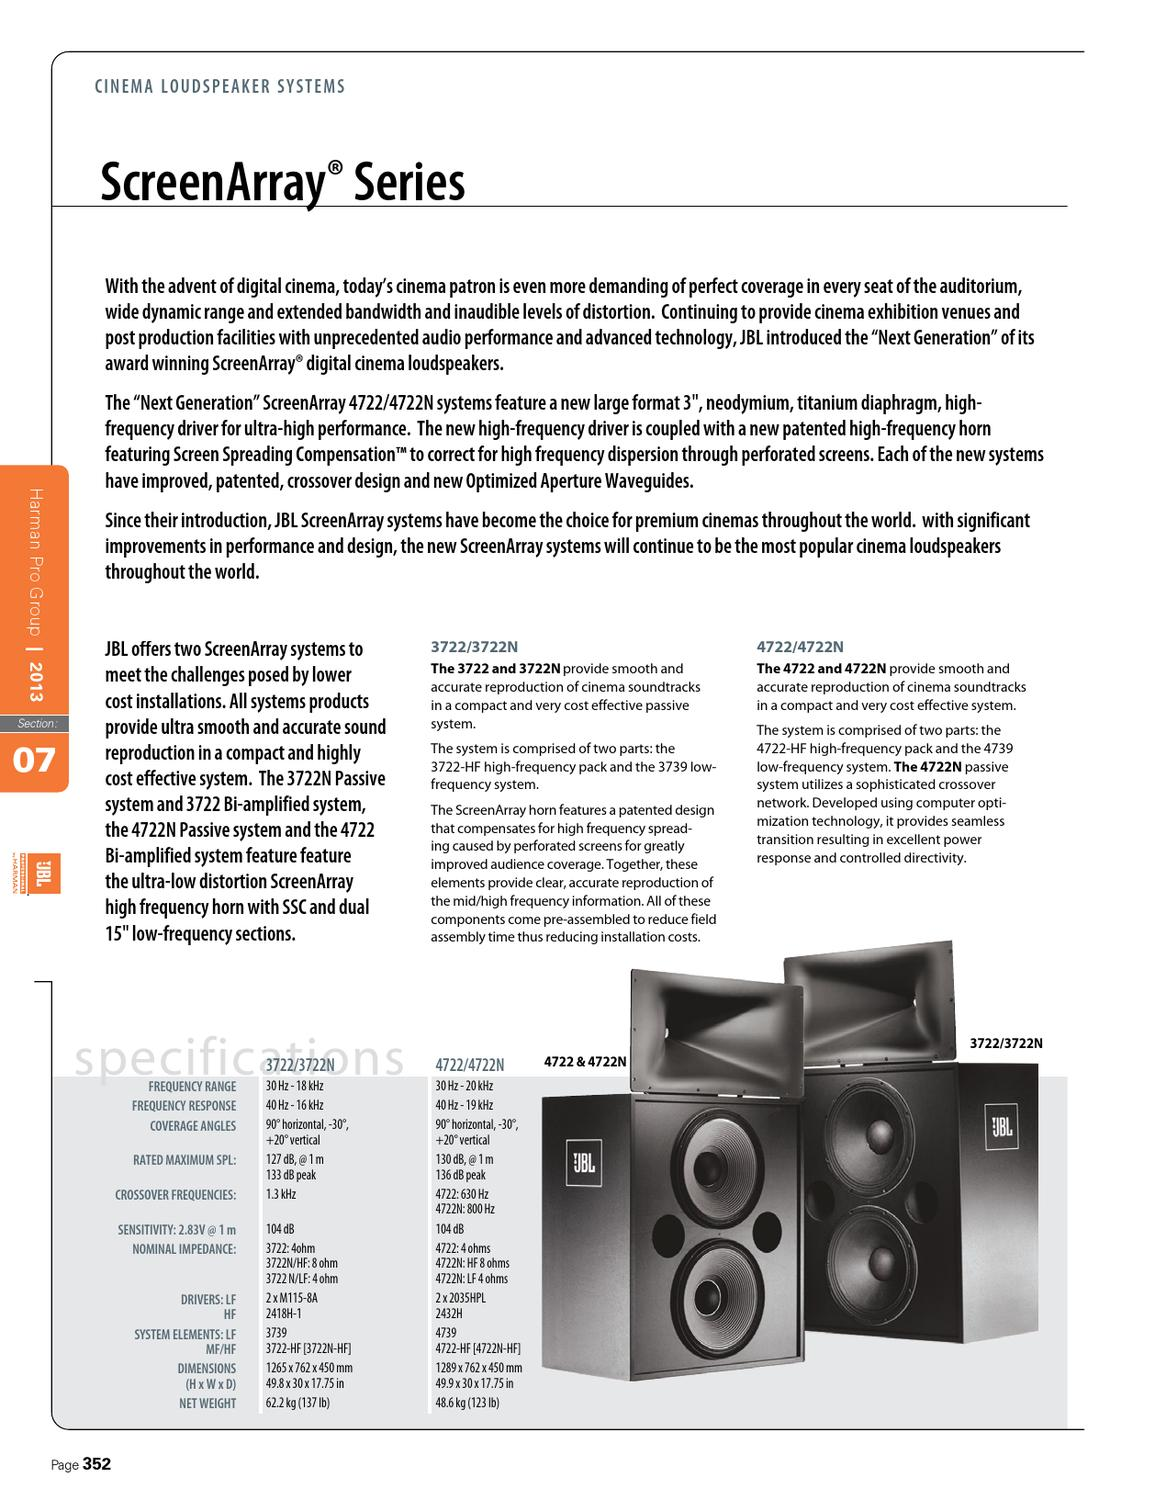 JBL 2013 by bvba bekafun - issuu